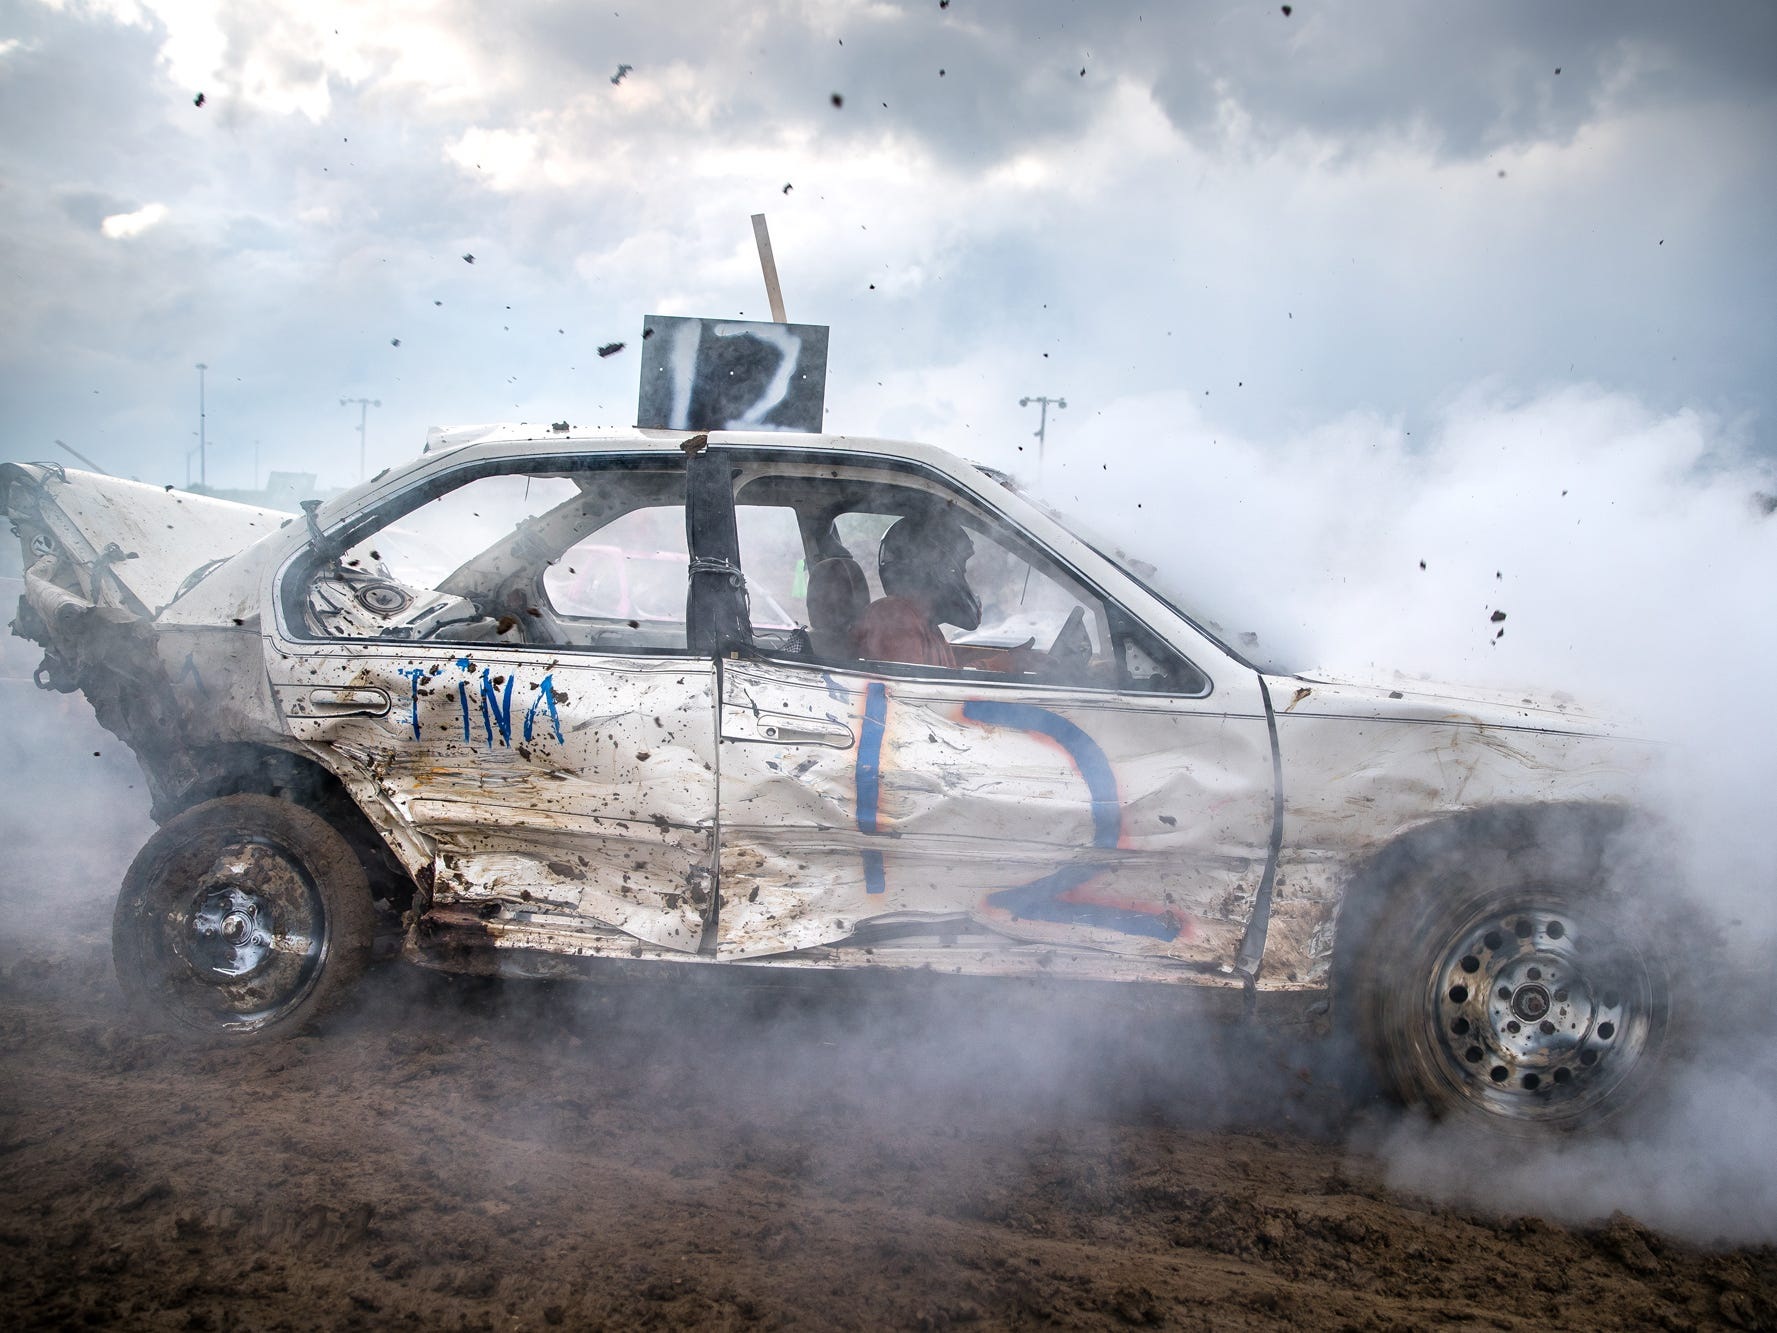 Clatyon Rhoton's car begins to smoke halfway through the demolition derby at the Marion County Fair on Friday, June 22, 2018.